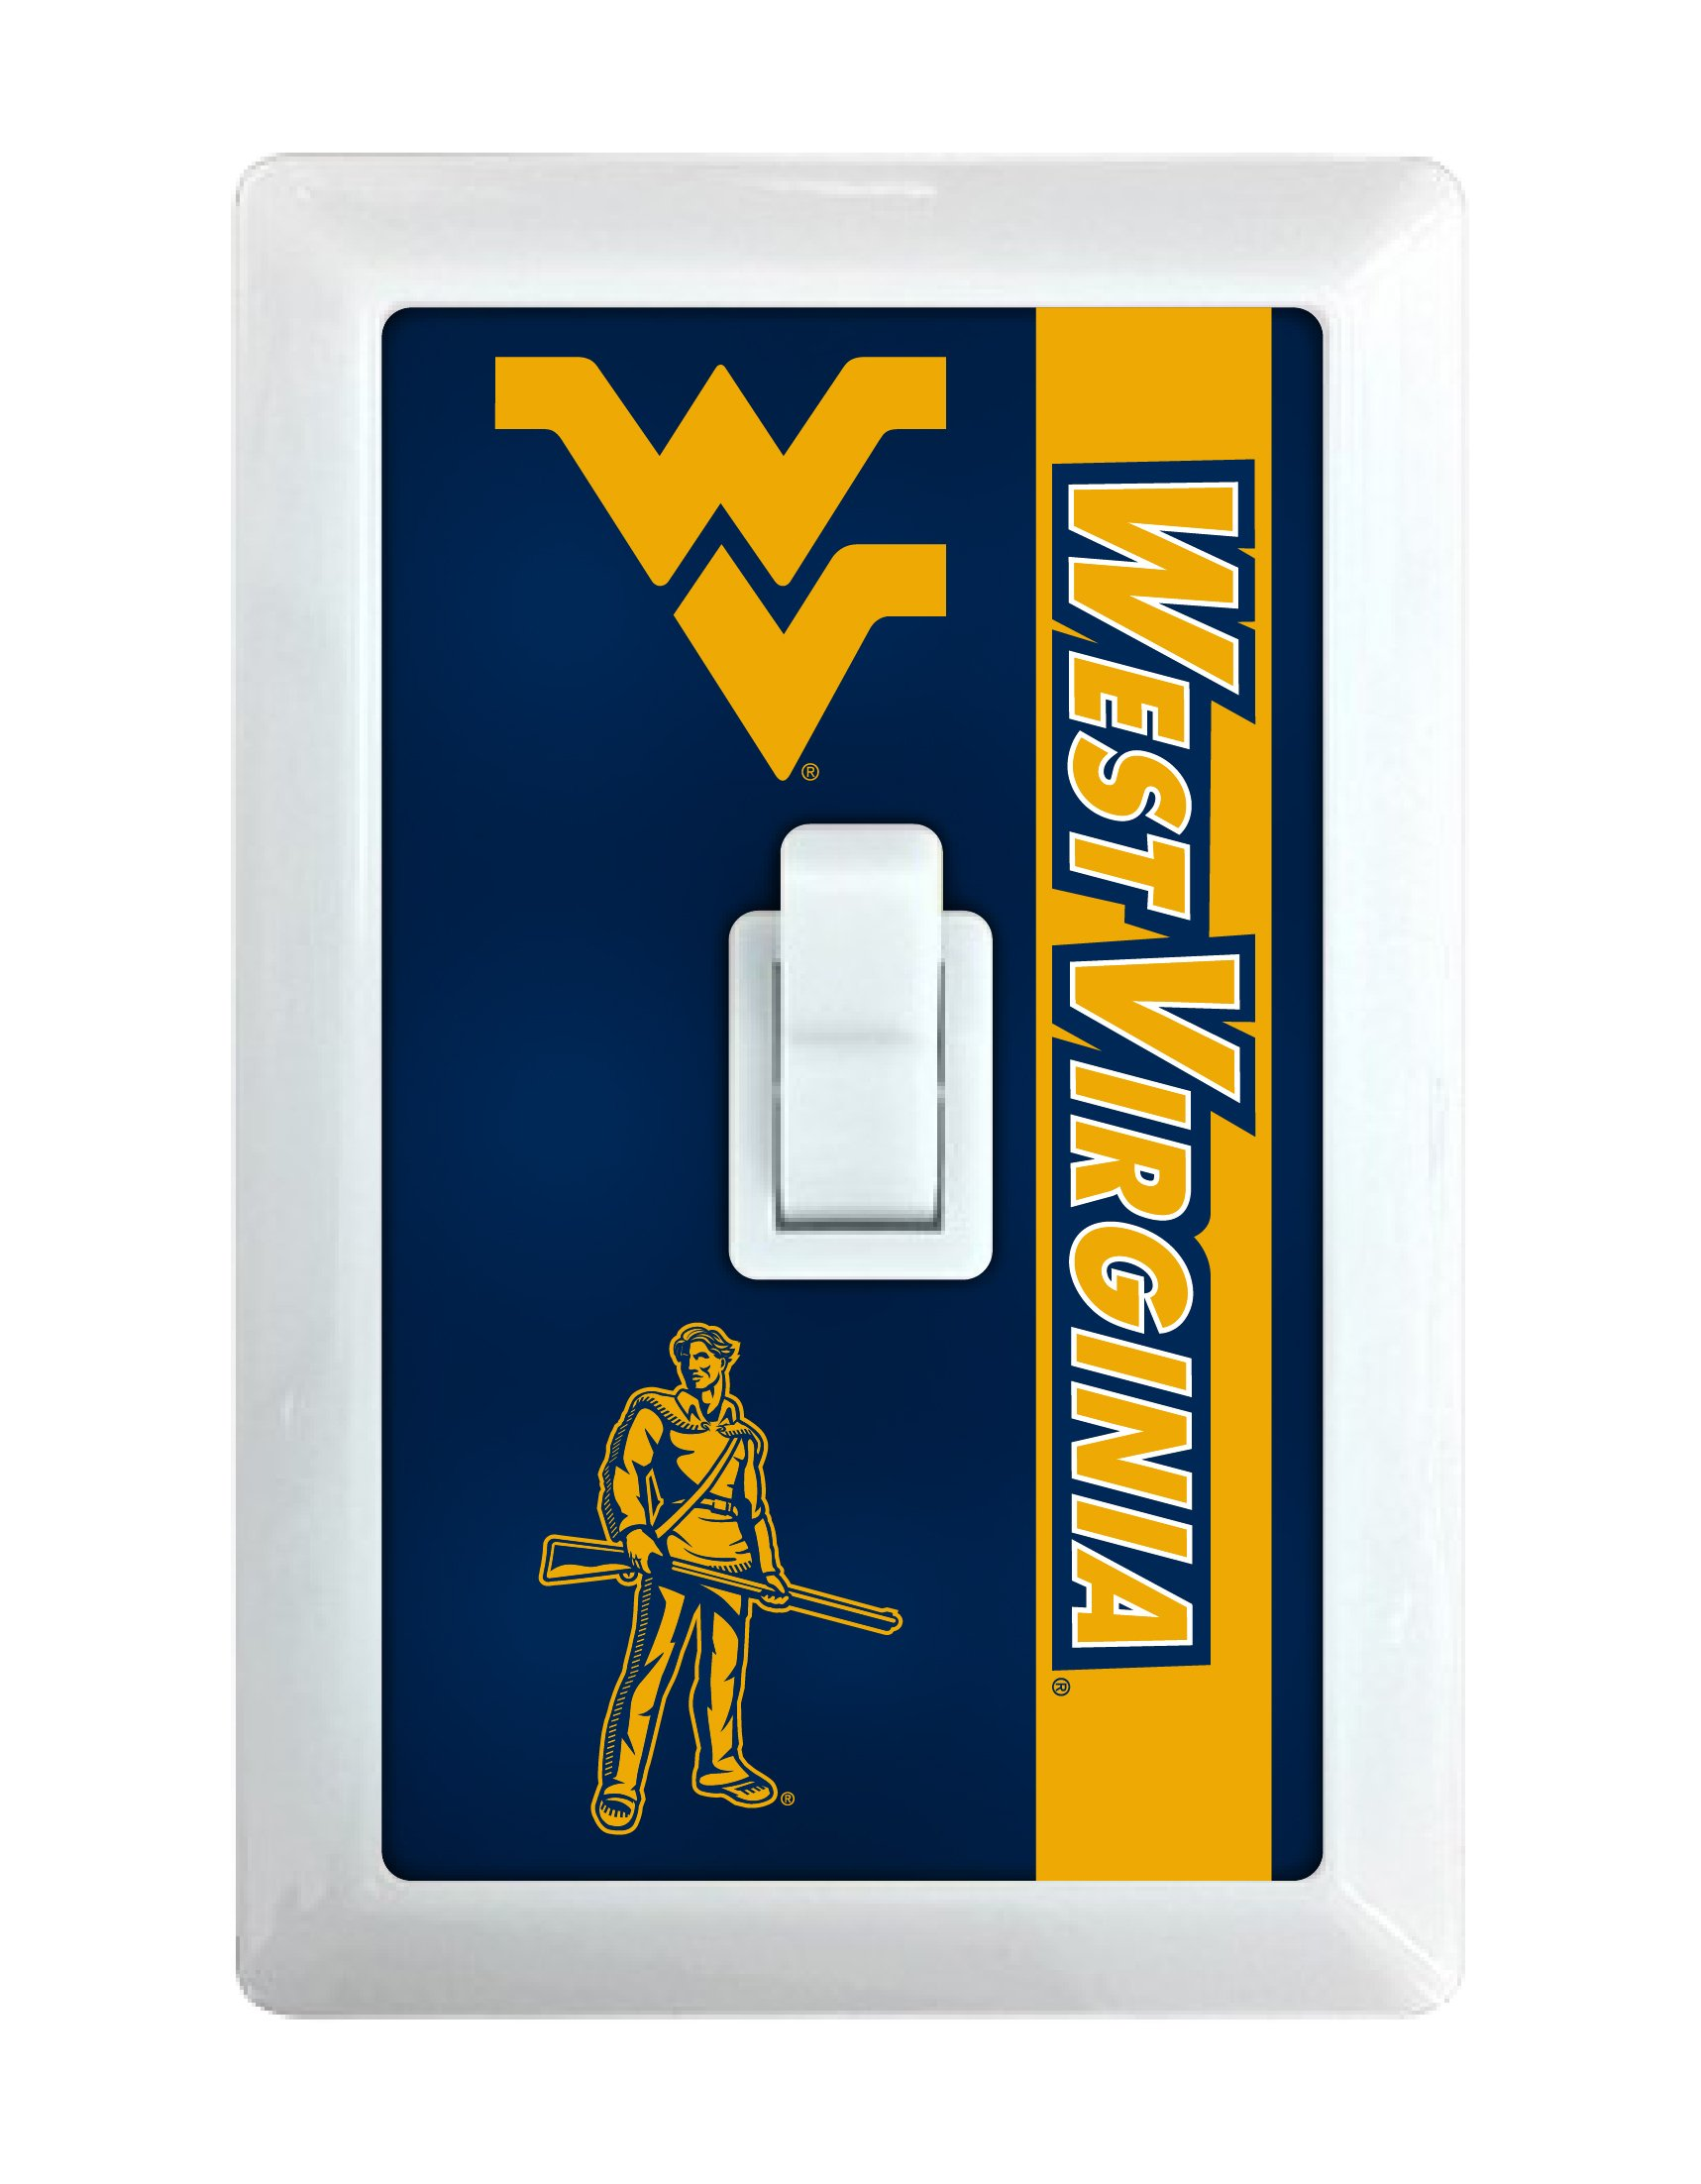 West Virginia Mountaineers LED Light switch